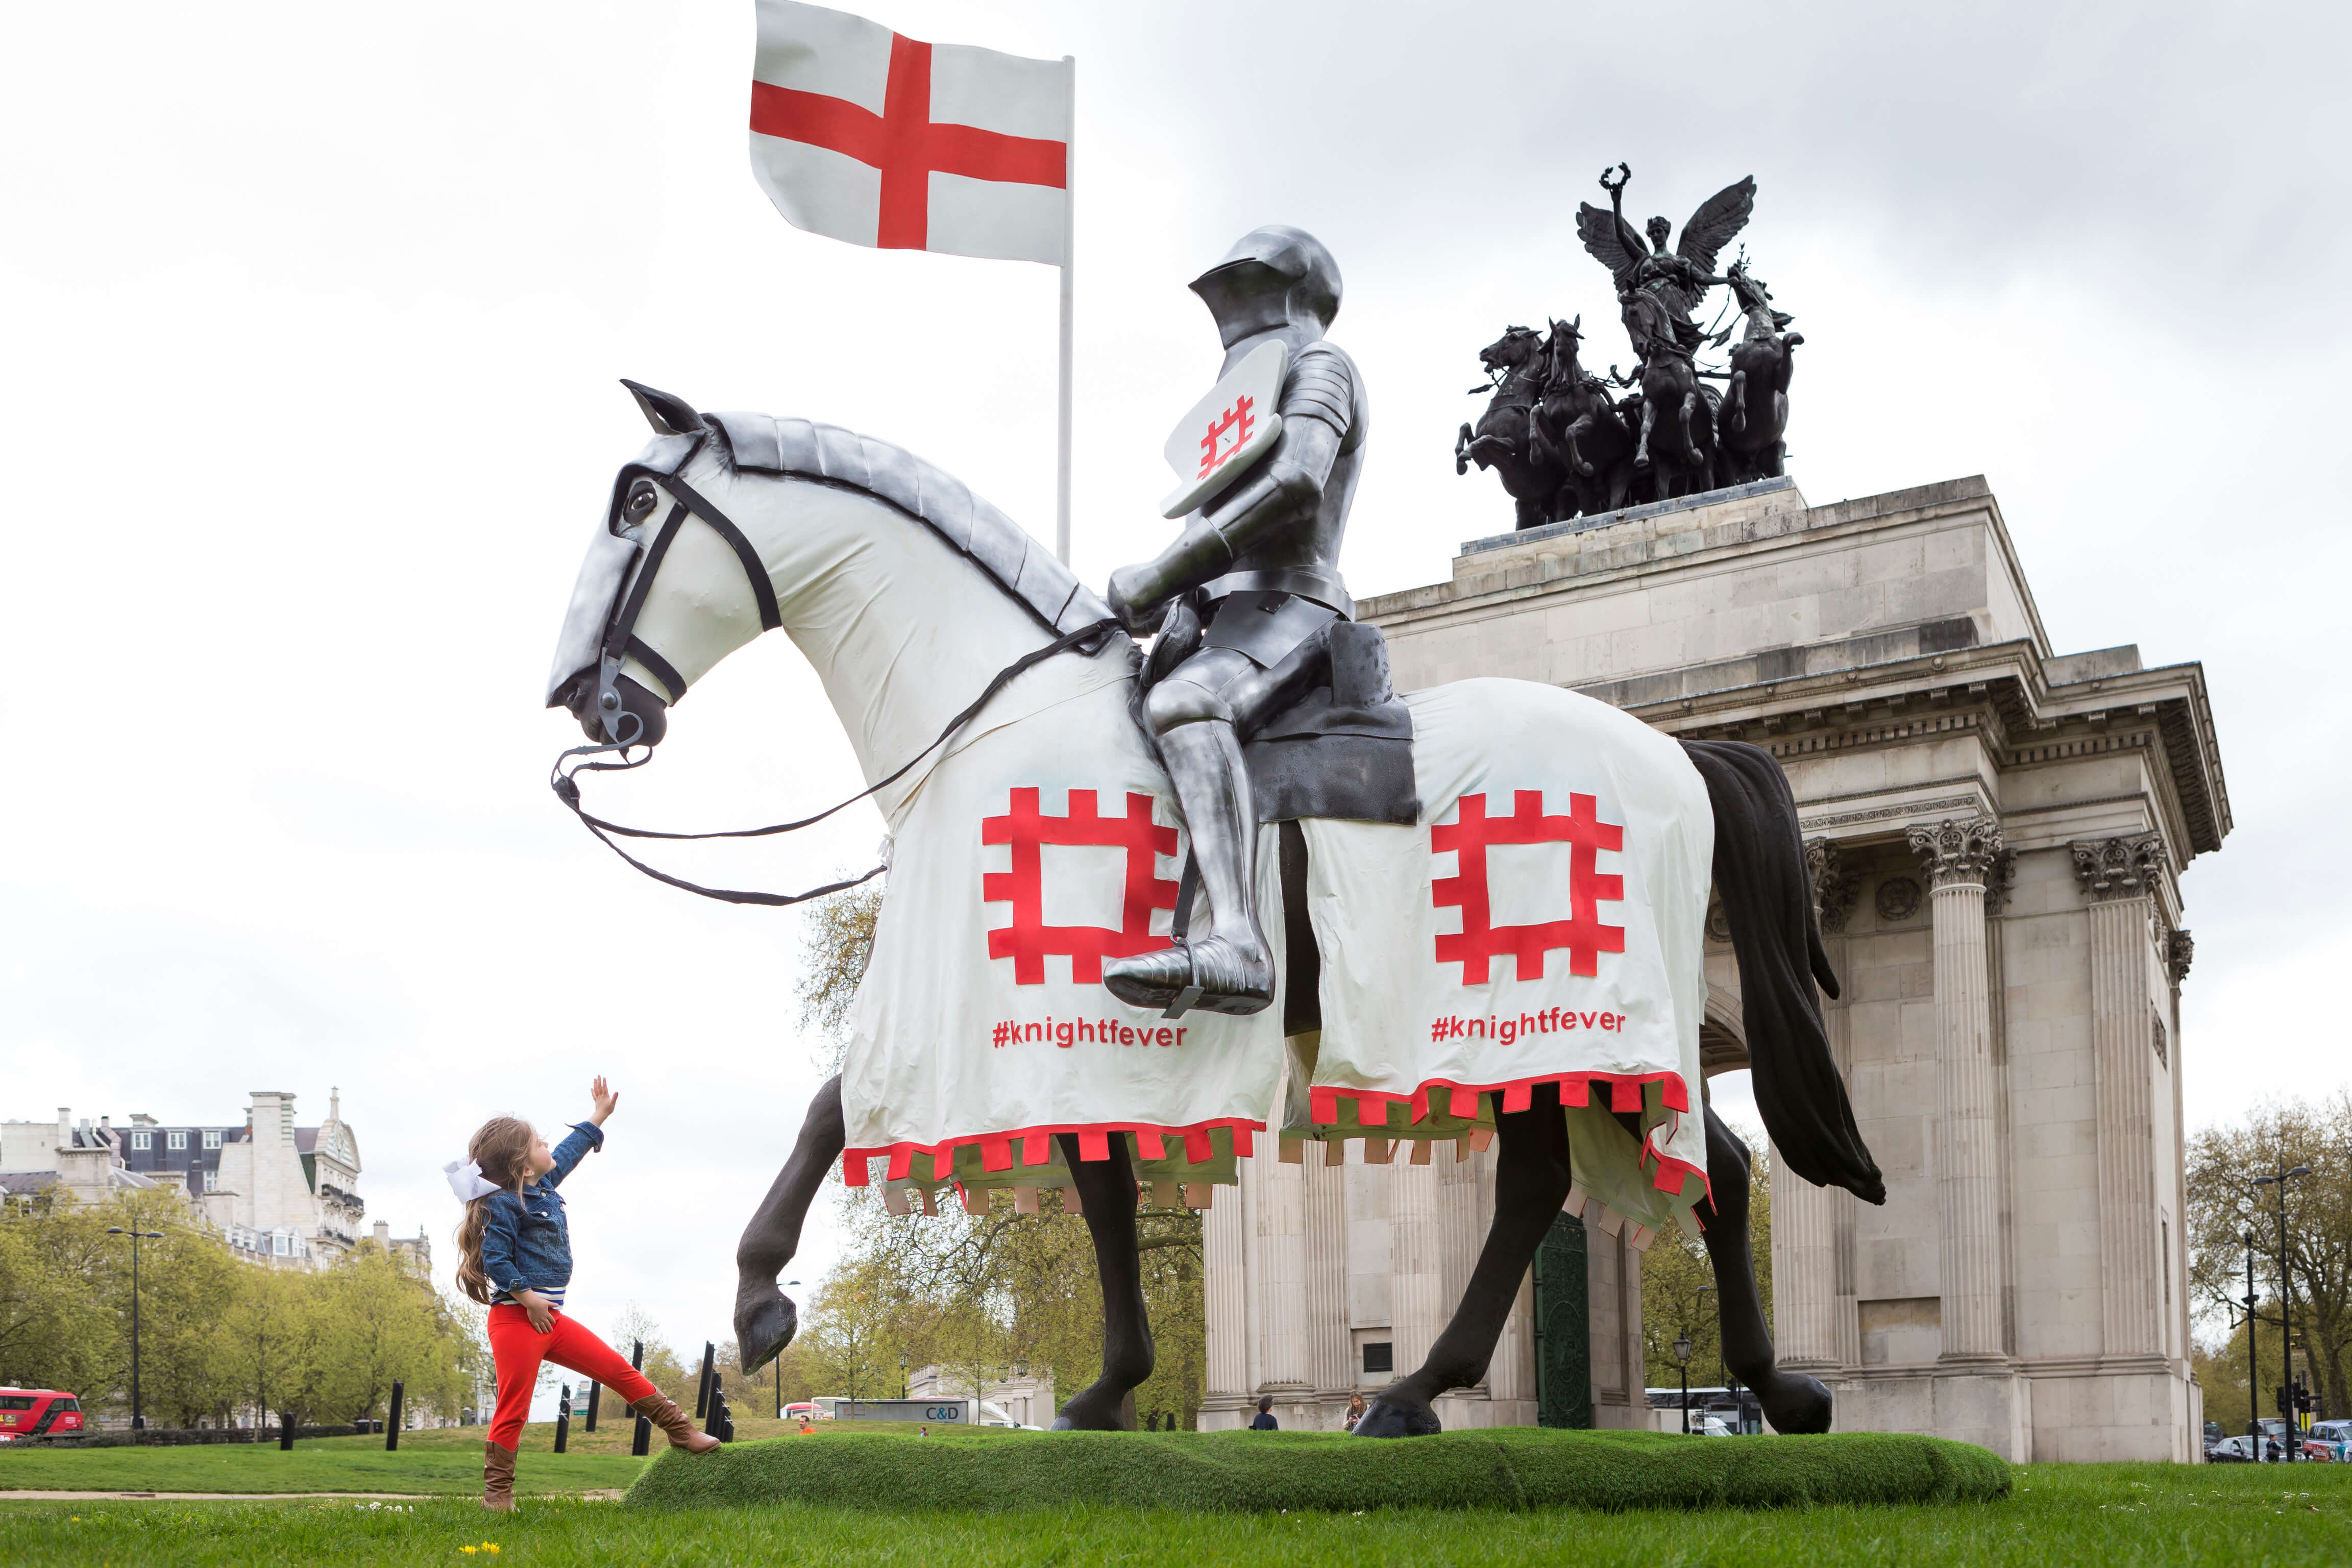 st george day wallpapers hd-10